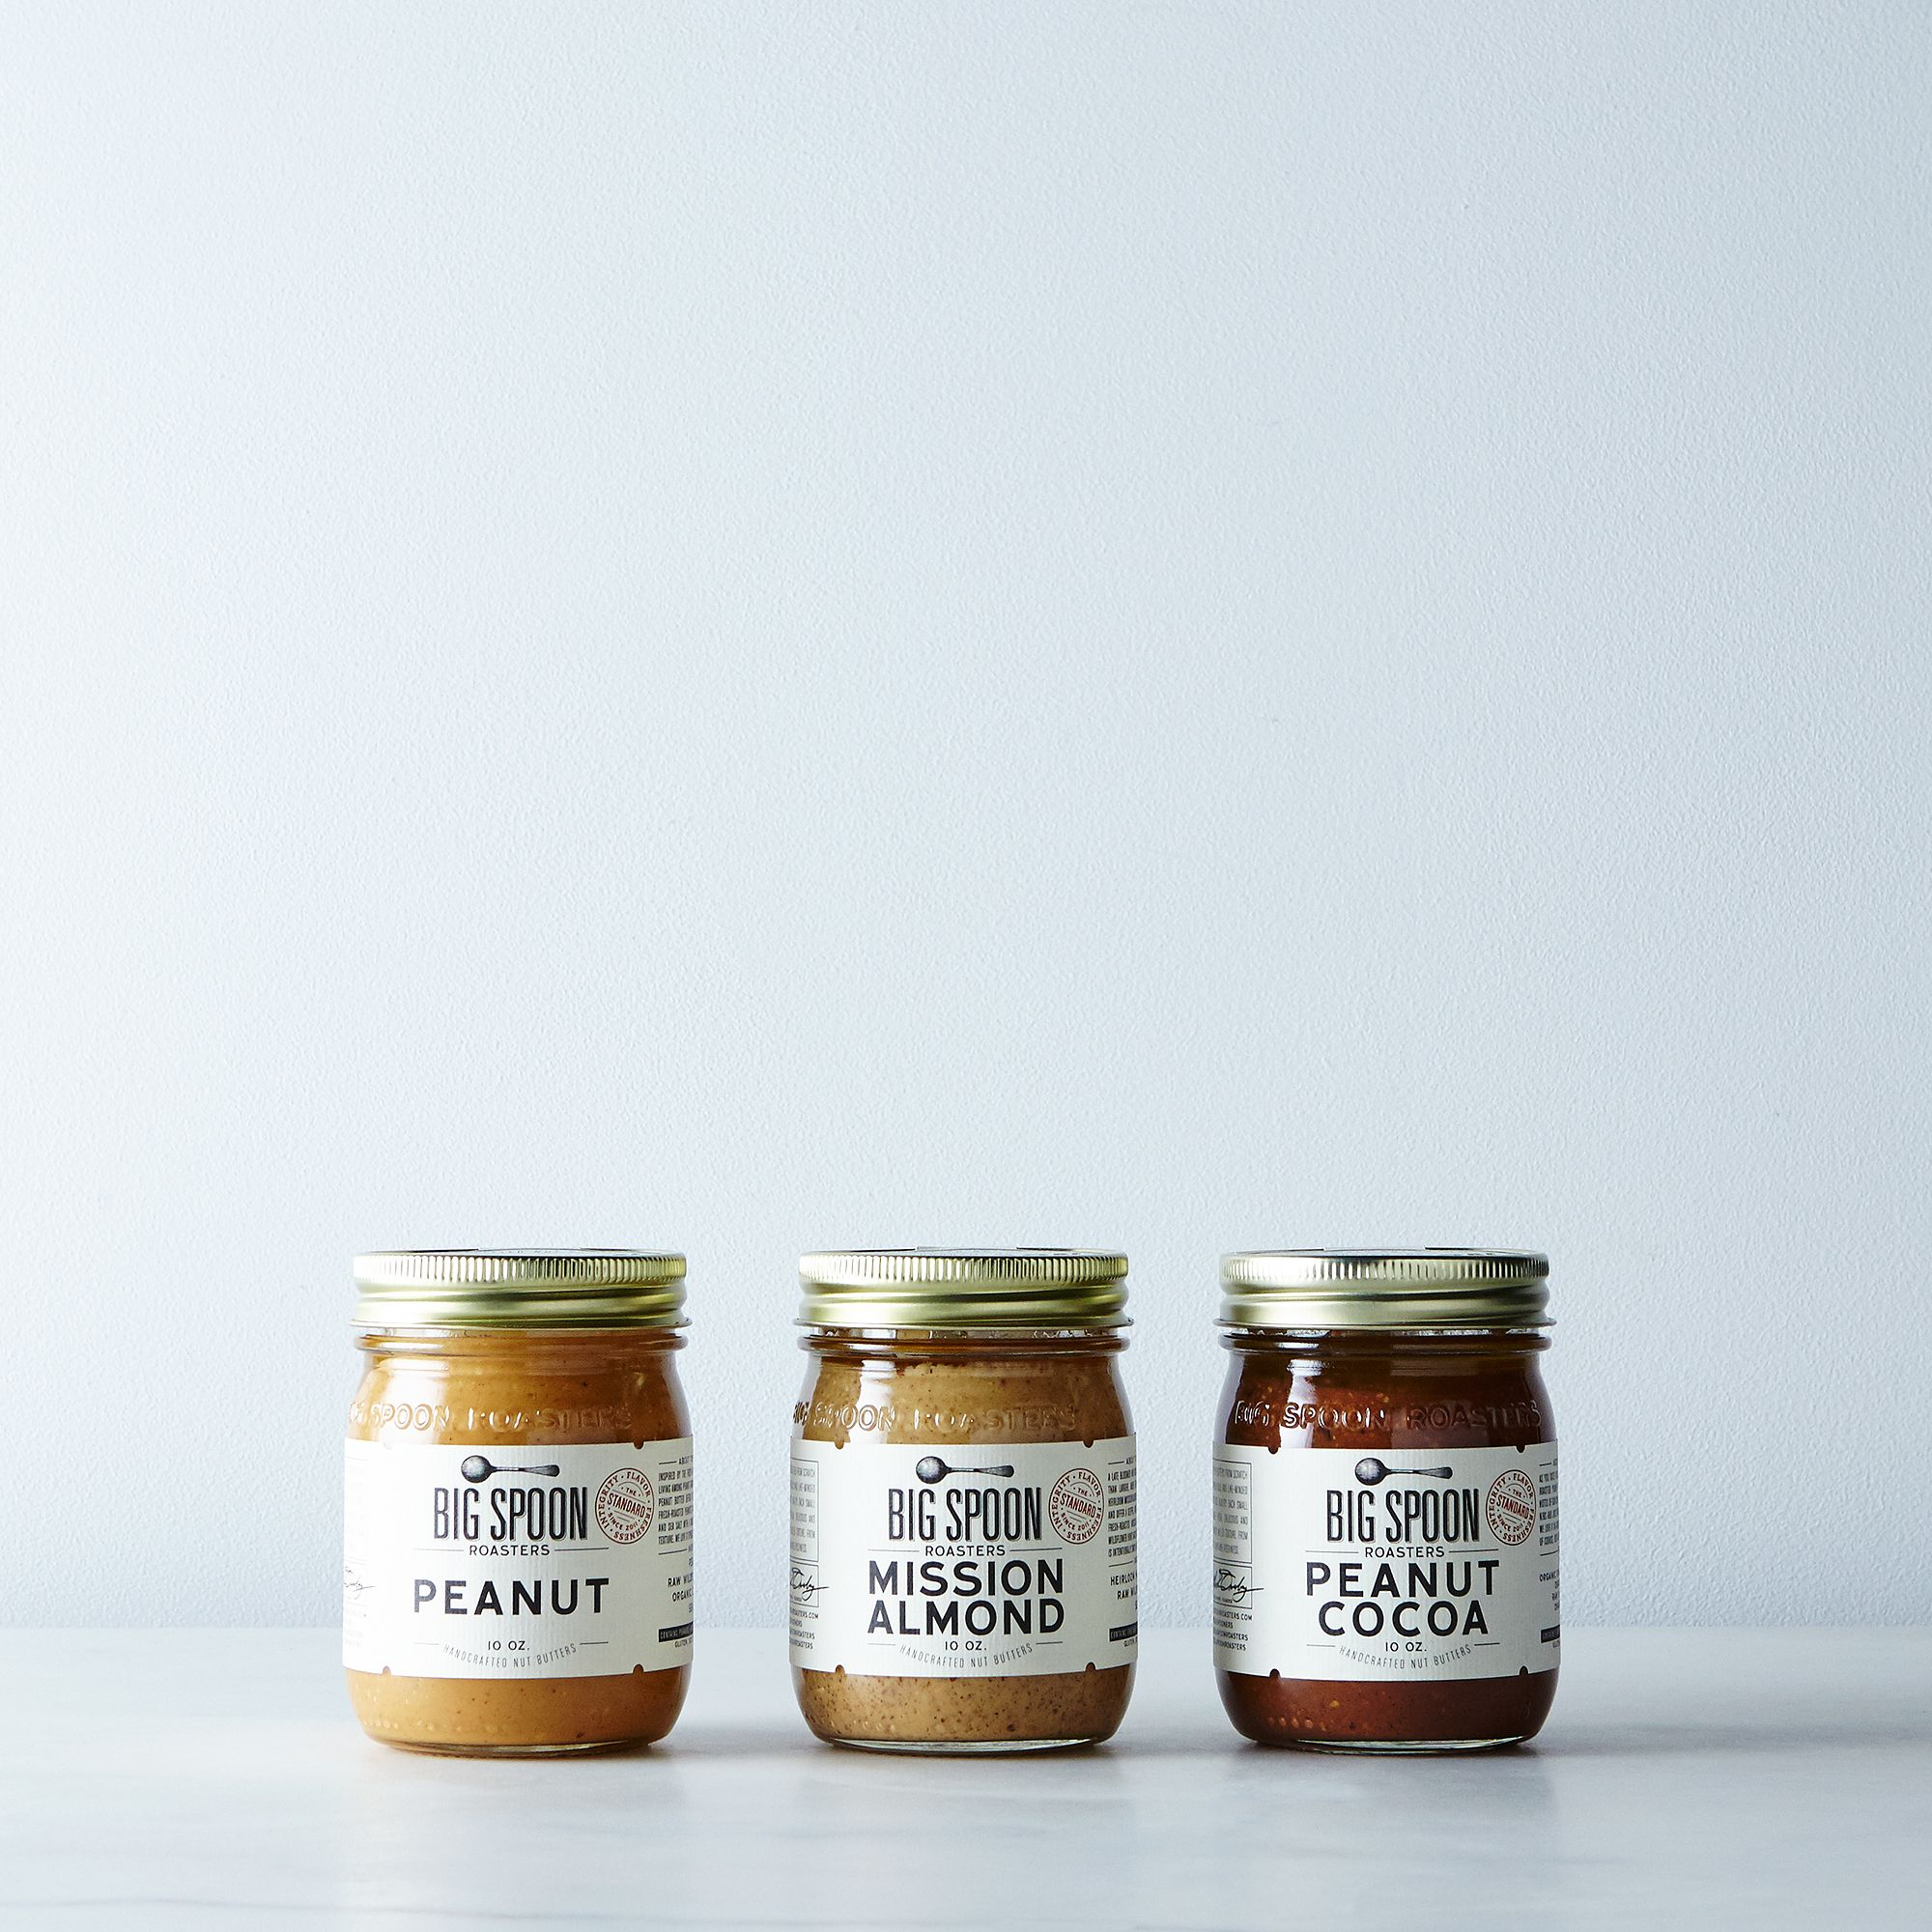 53fbd4d8 456b 476f 933a 828534c40b9d  2015 0807 big spoon roasters almond butter gift pack silo set of 3 option 2 rocky luten 005